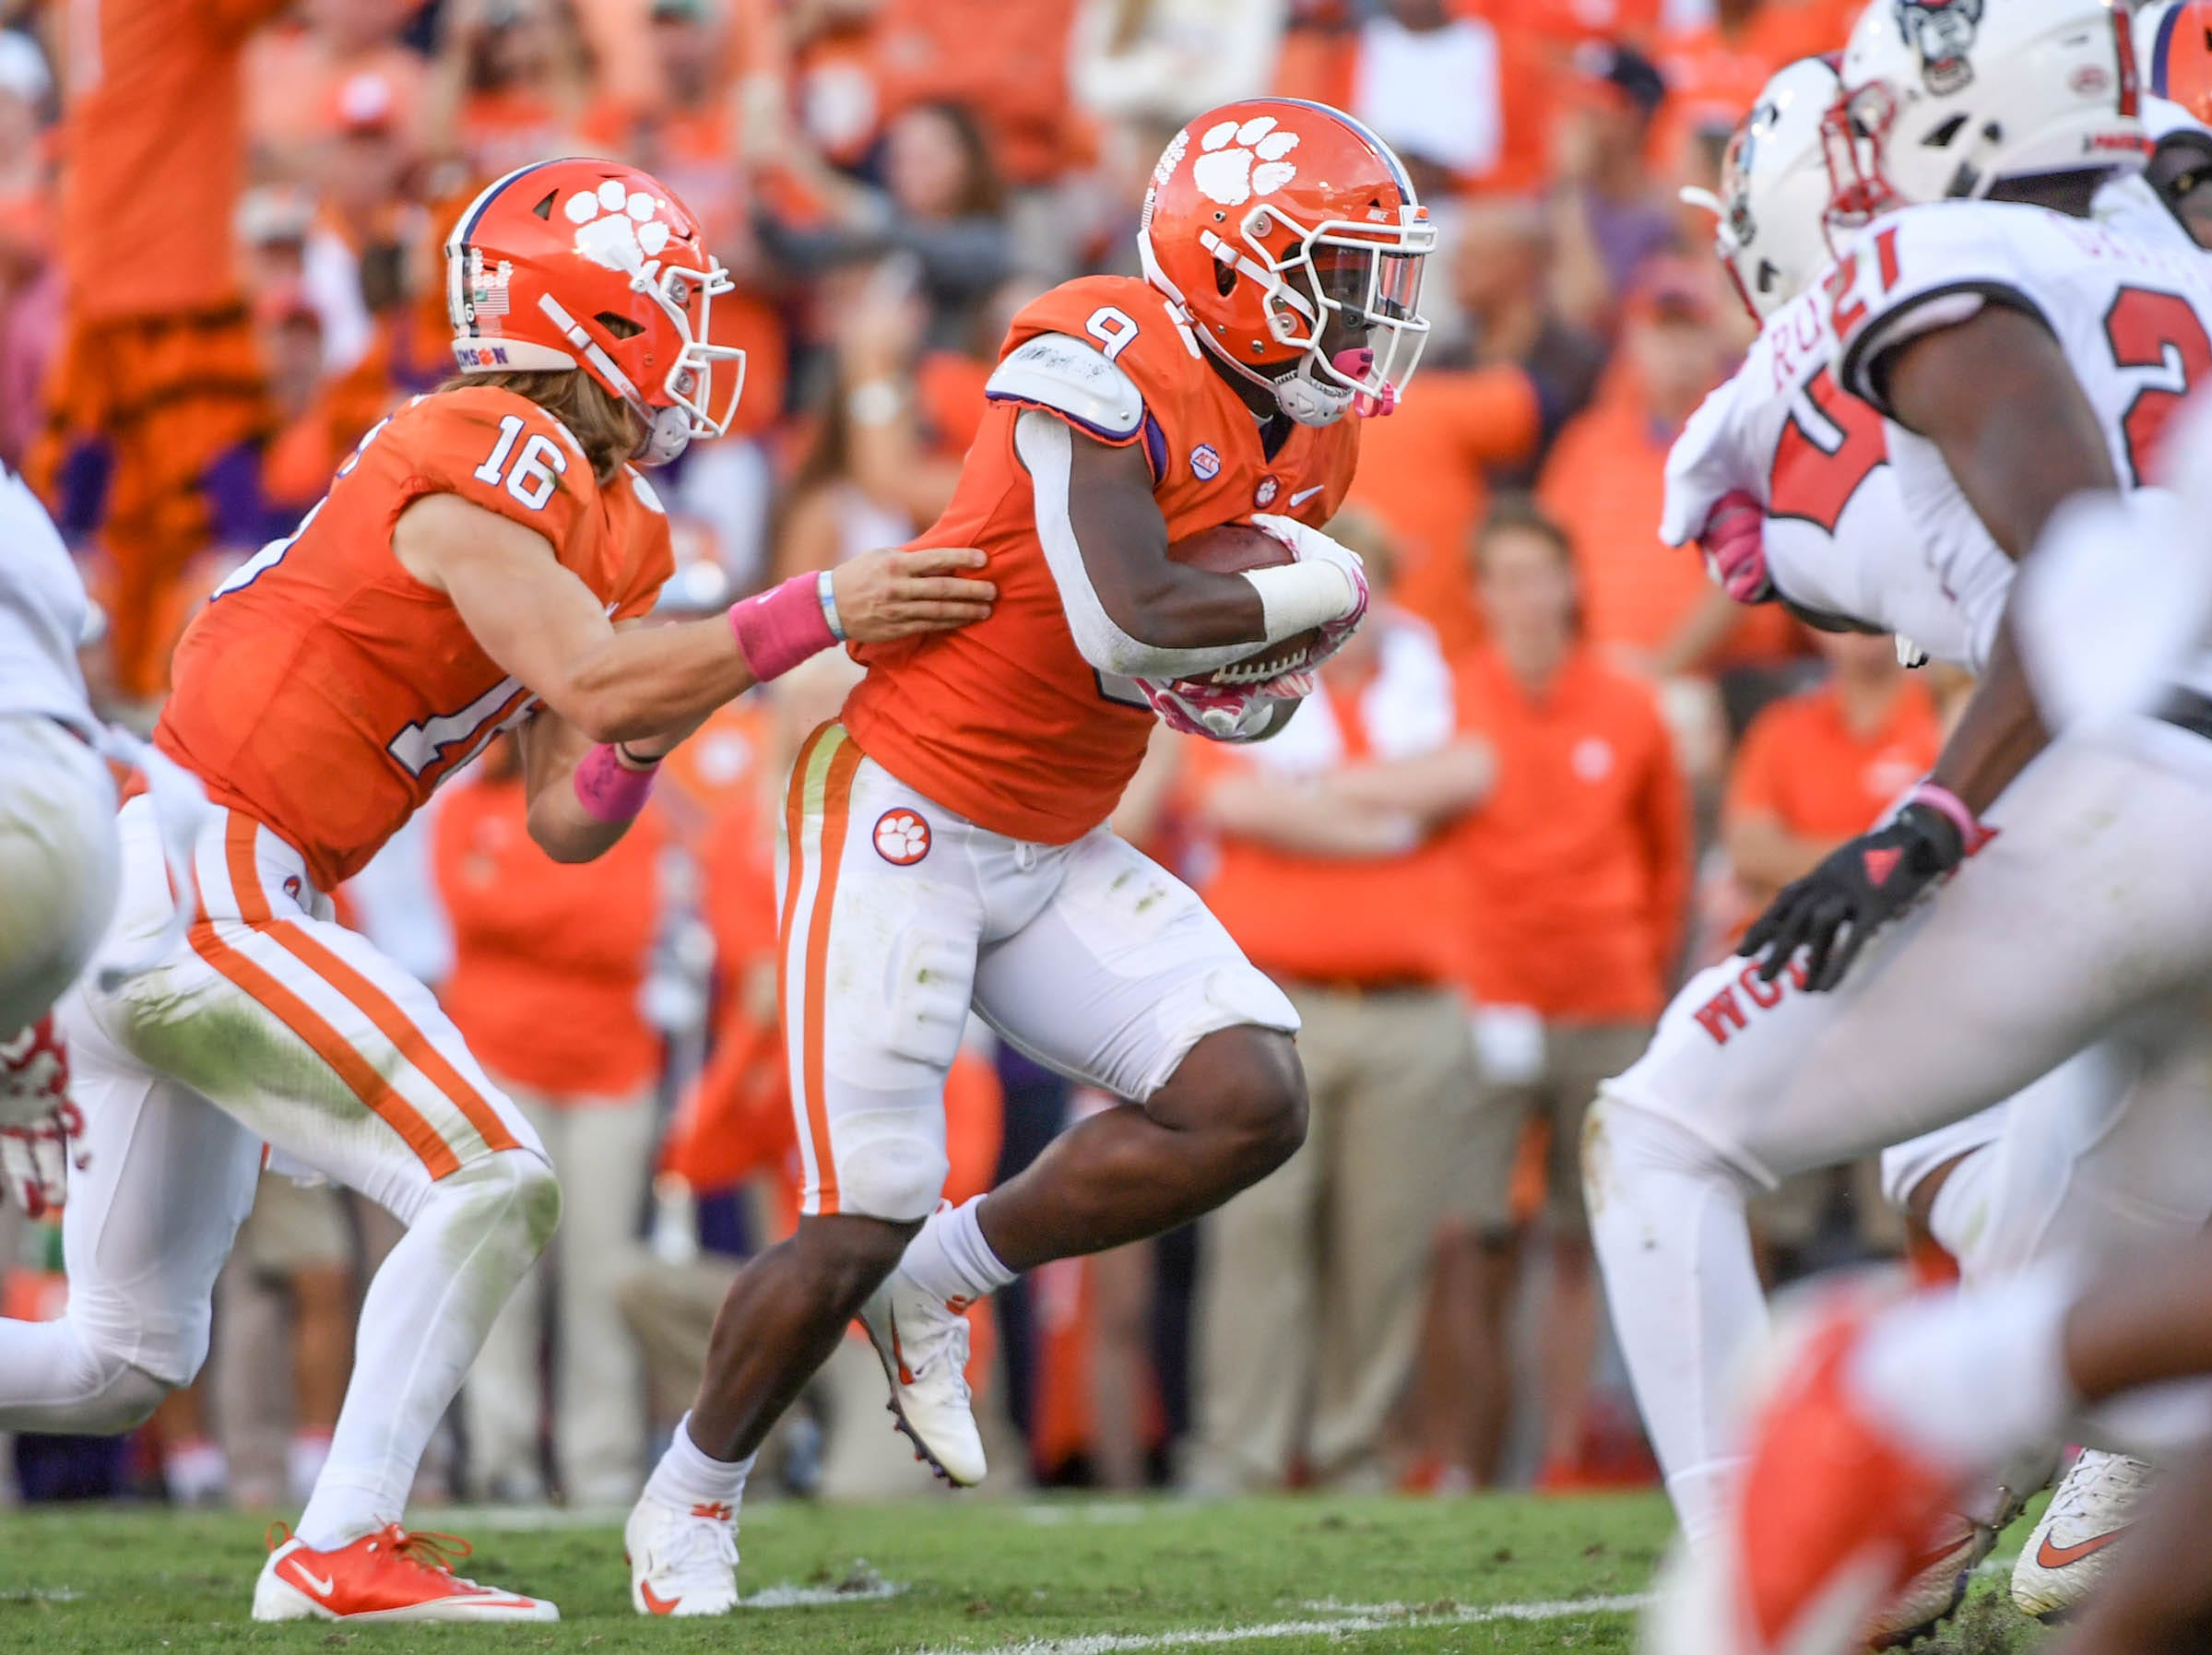 Clemson quarterback Trevor Lawrence (16) hands off to running back Travis Etienne (9) on his way to scoring a touchdown during the second quarter in Memorial Stadium on Saturday, October 20, 2018.